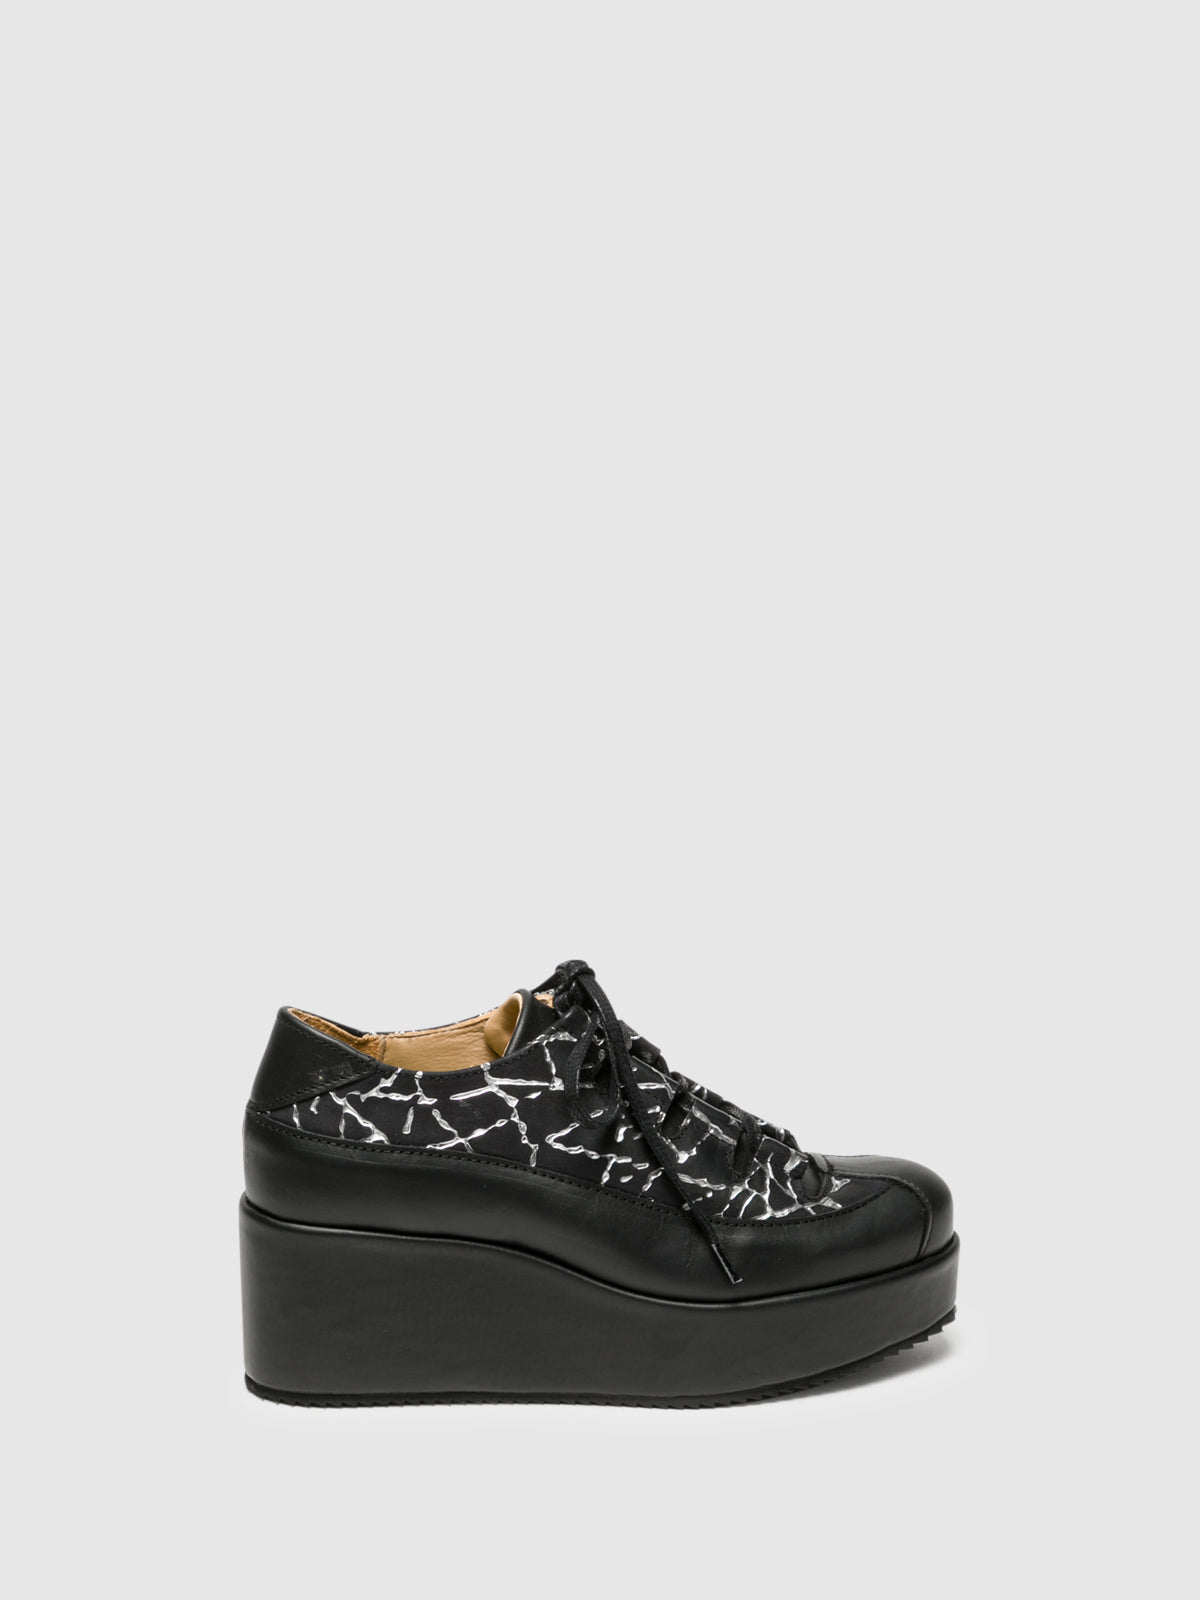 Marita Moreno Black Lace-up Shoes